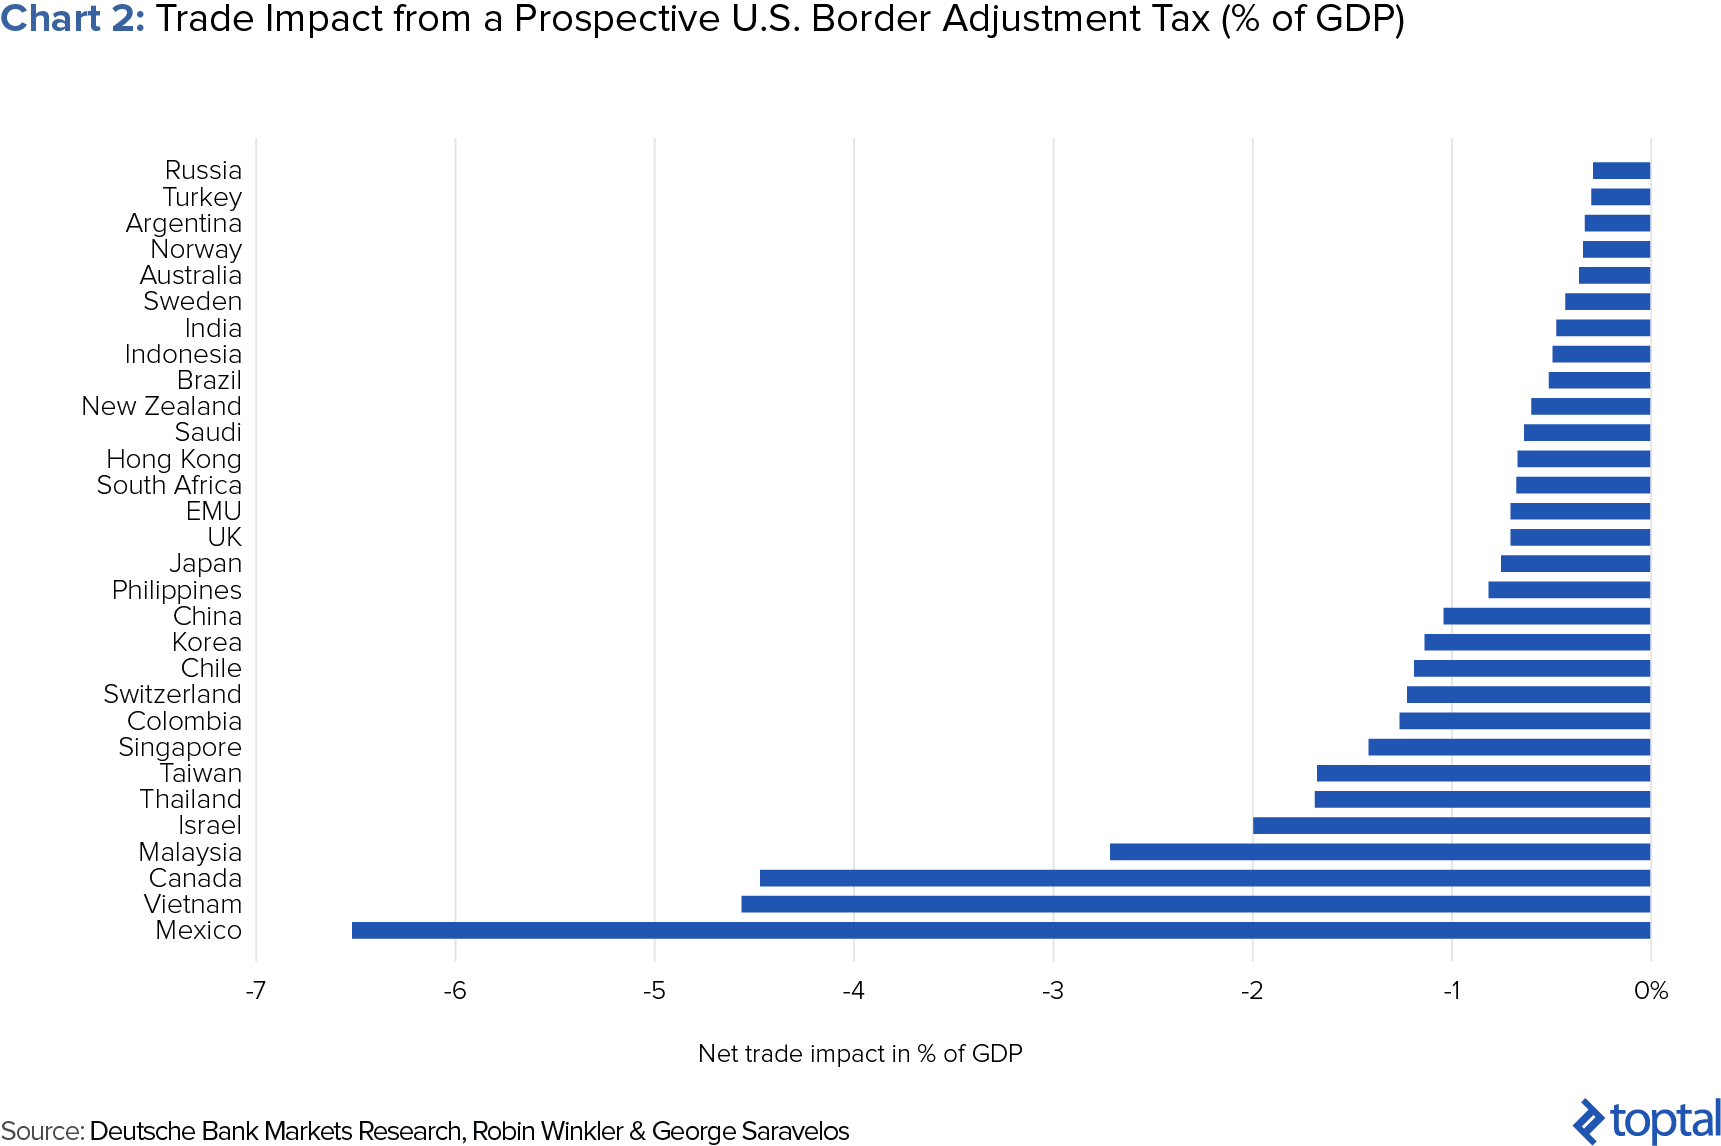 Potential Trade Impact from Border Adjustment Tax